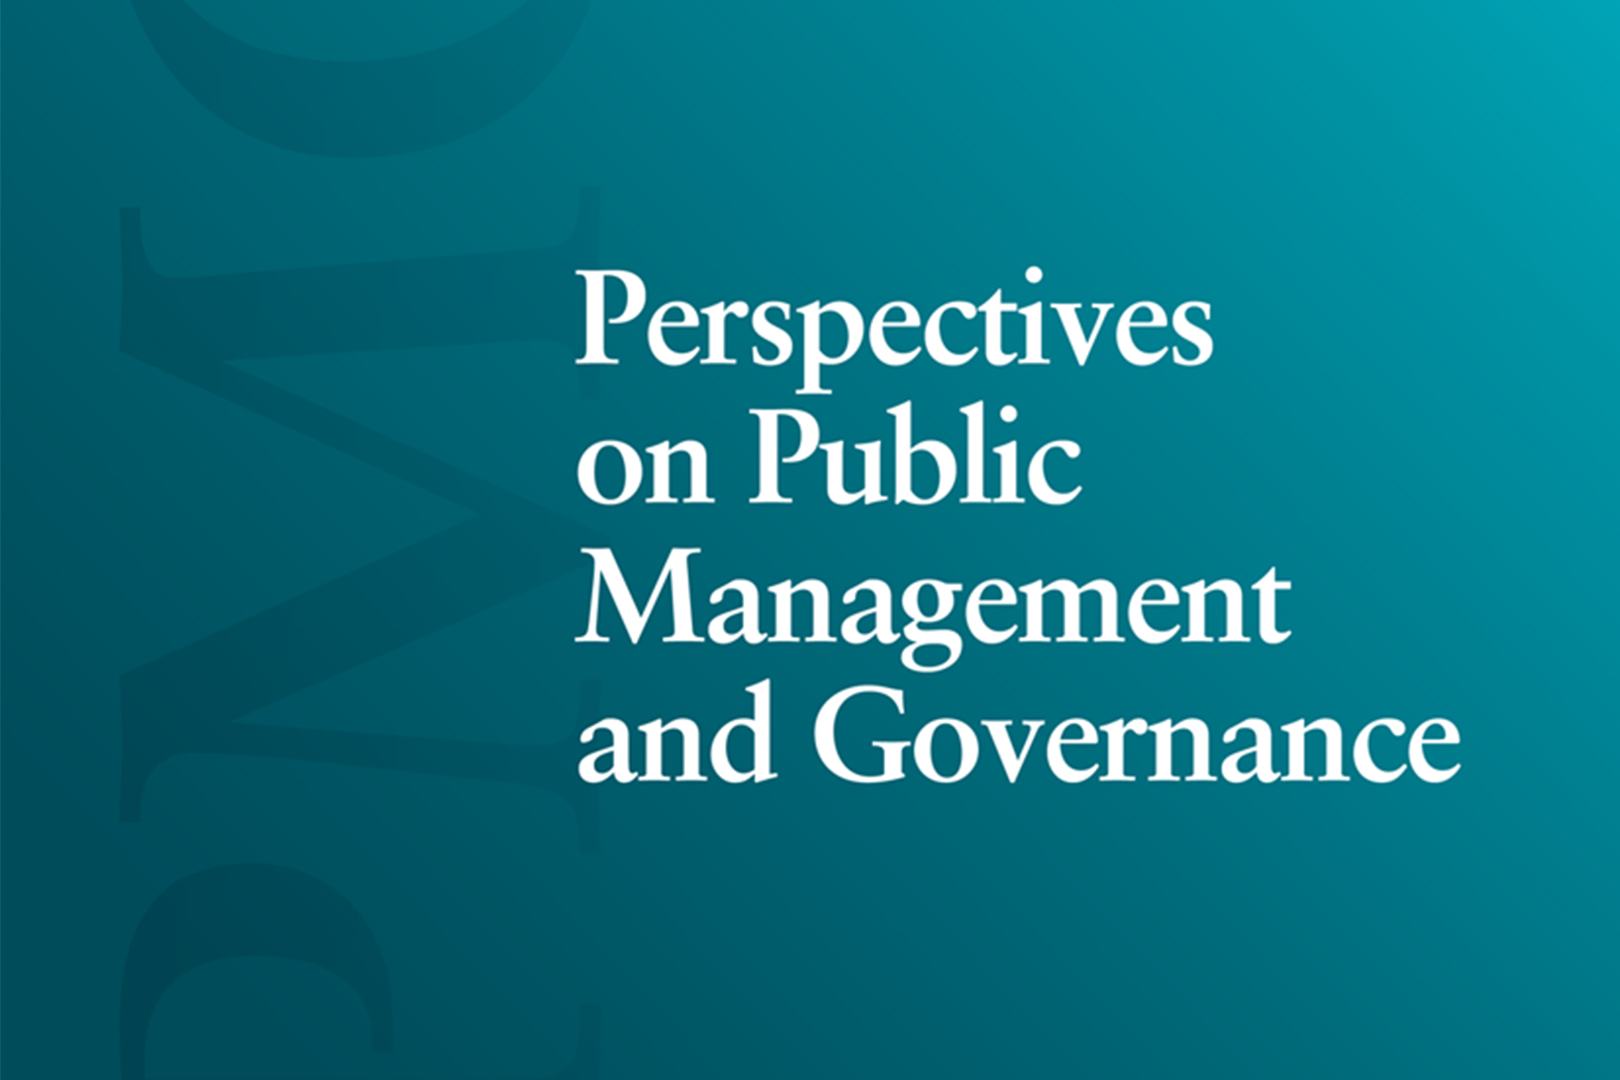 Perspectives on Public Management and Governance